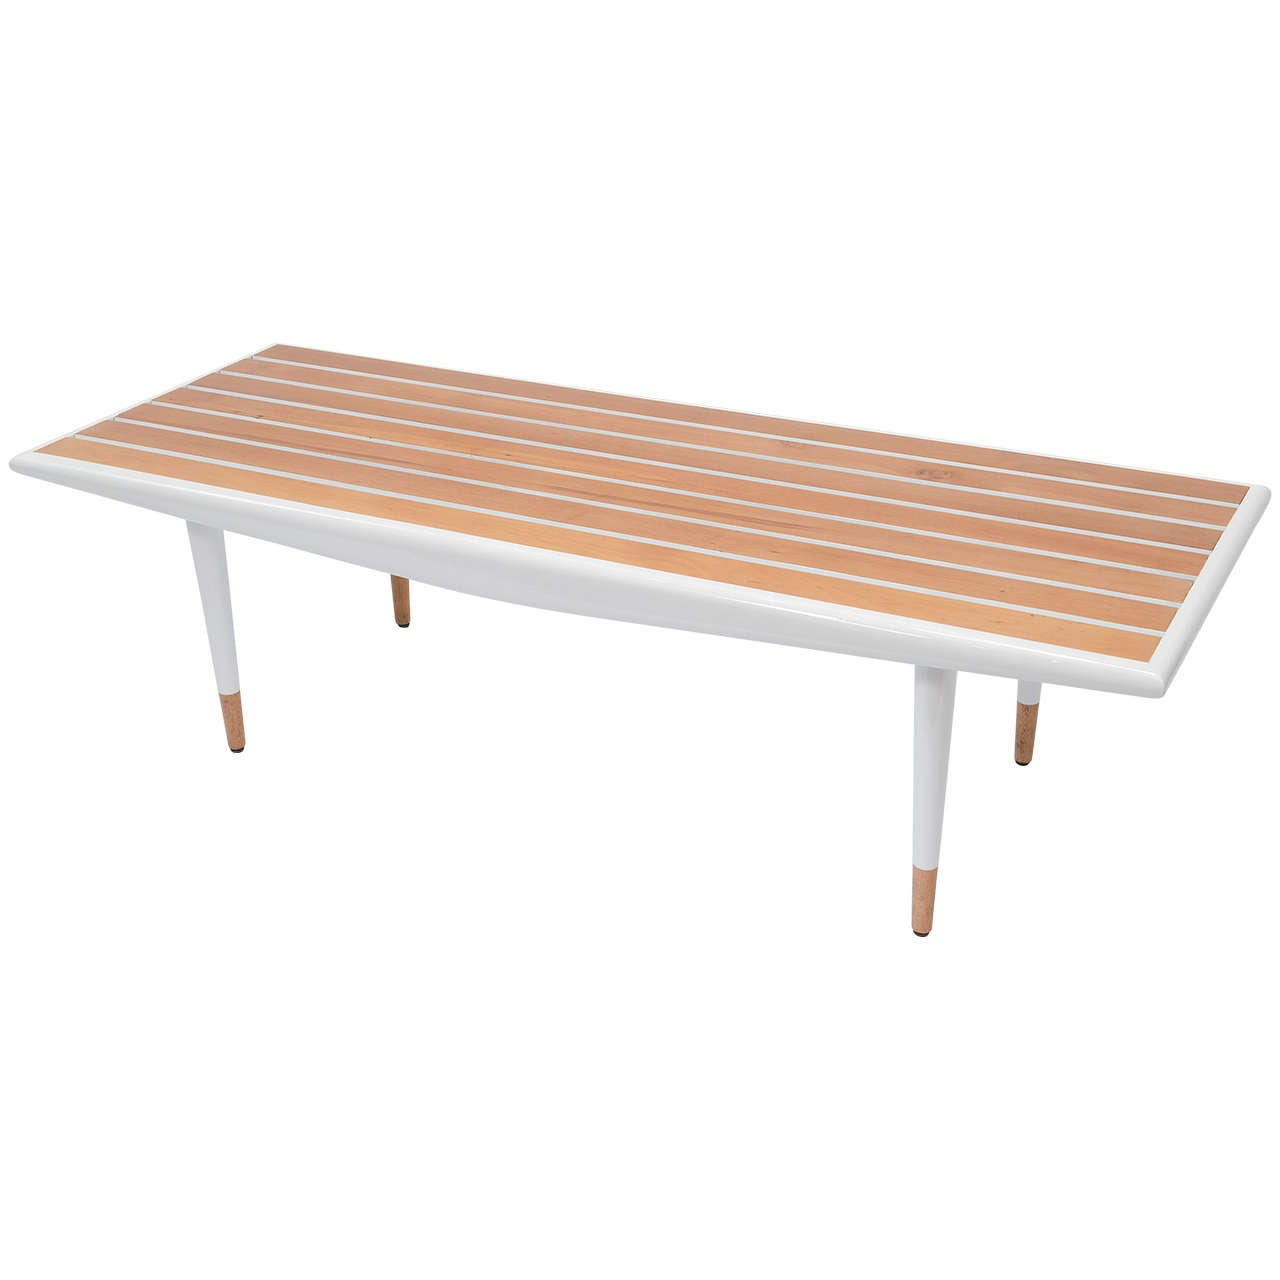 Mid Century White Slatted Wood Table Bench At 1stdibs